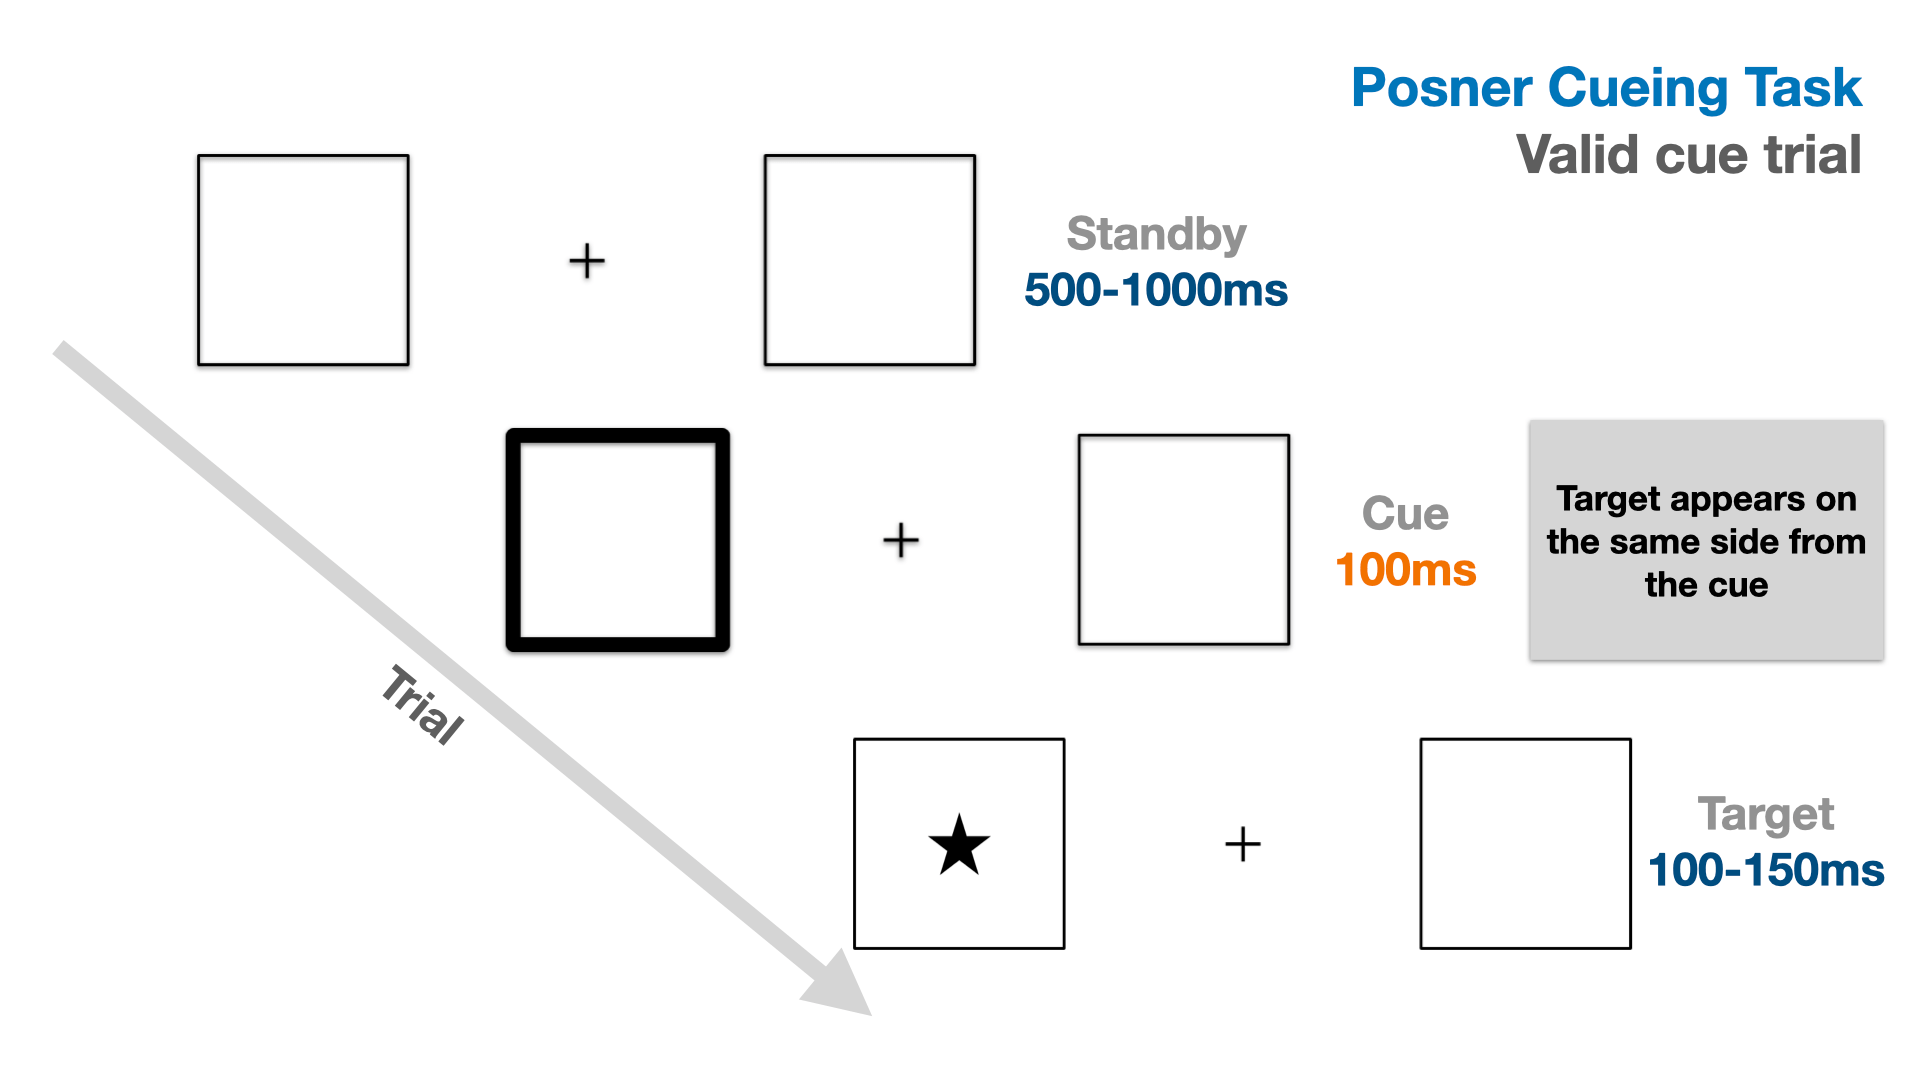 Illustration of the trial flow in a validly cued trial of the Posner cueing task